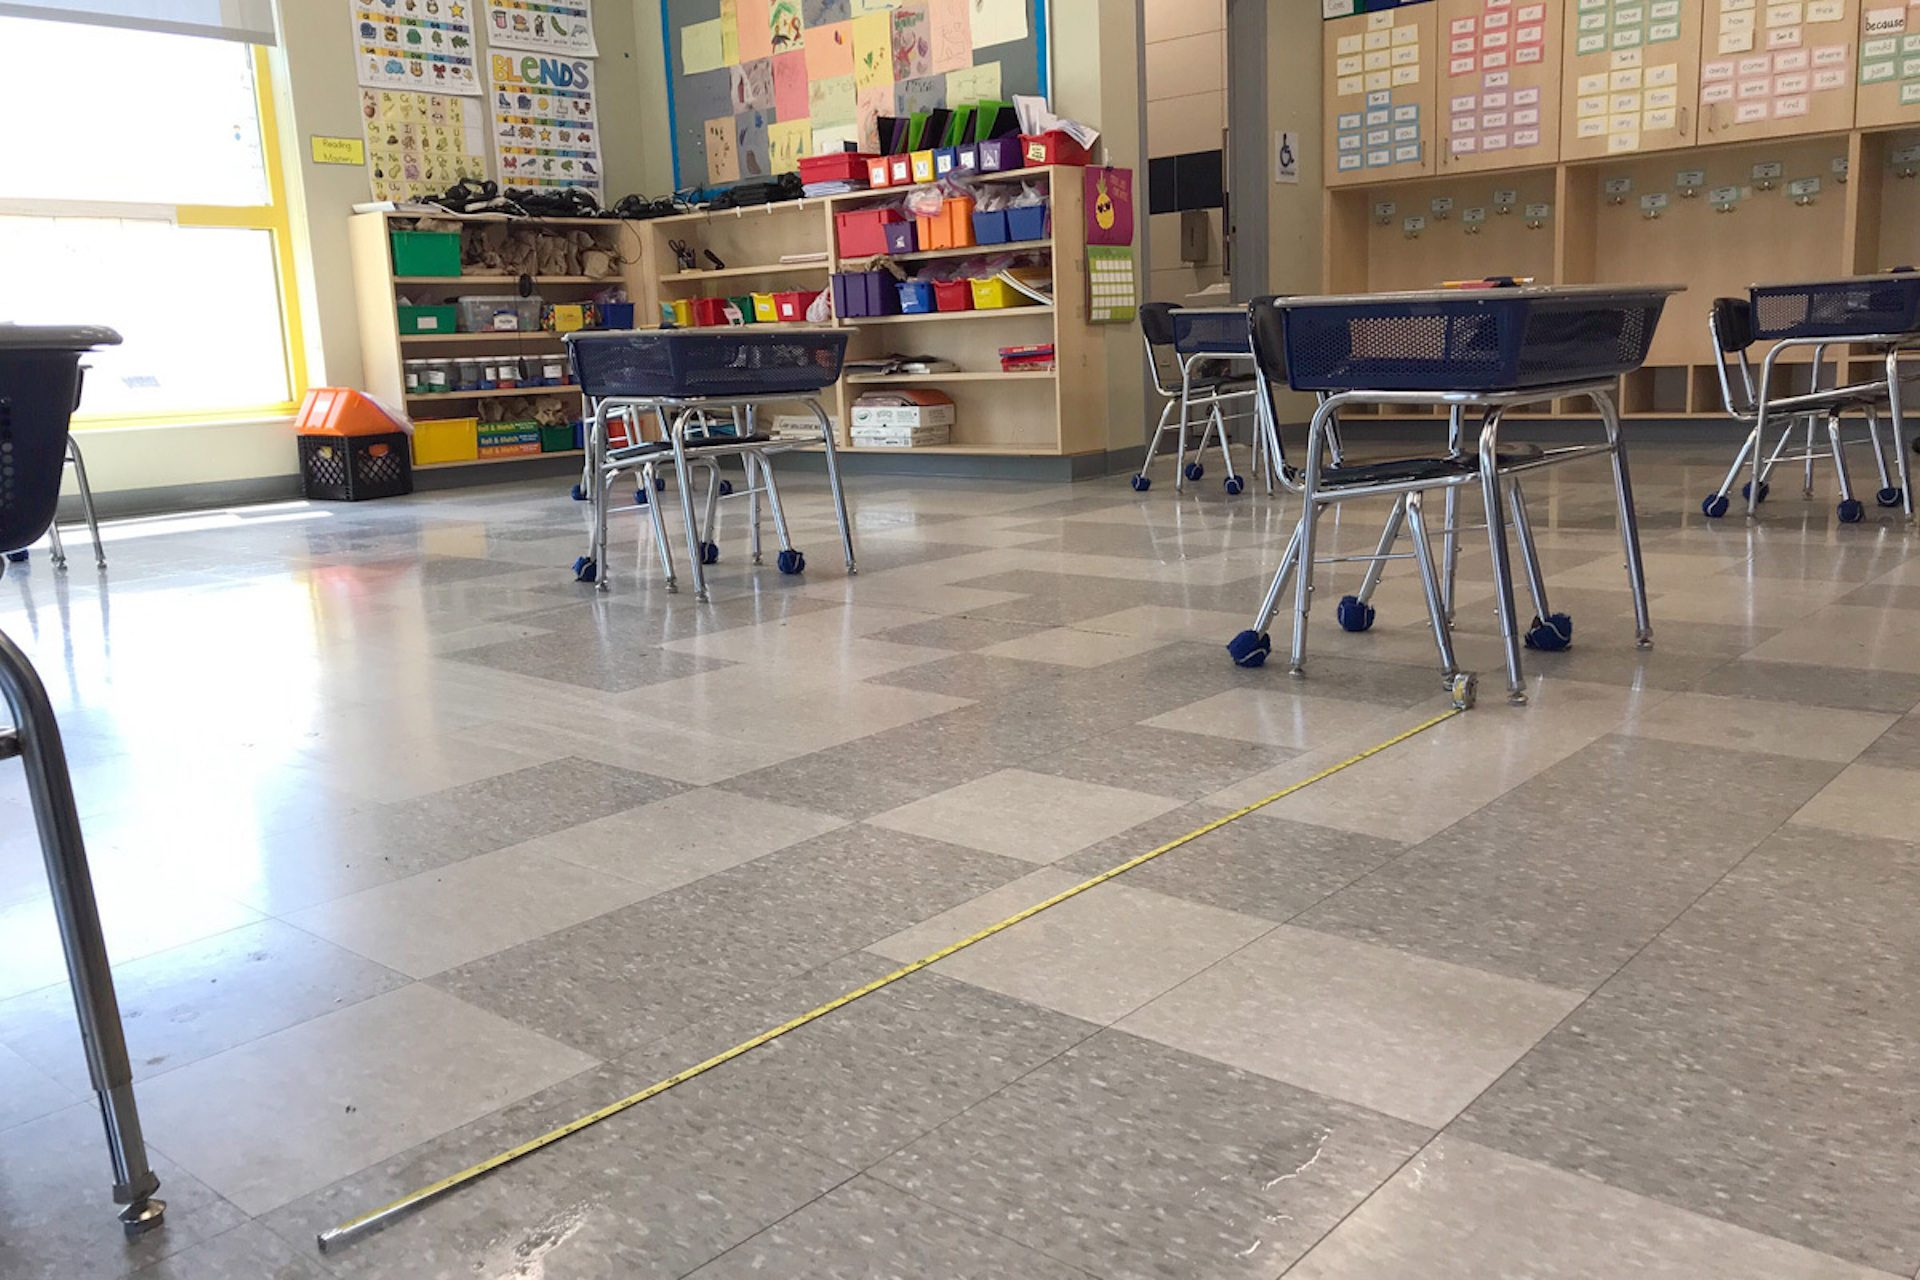 Desks are spaced out 6-feet apart in a classroom at Camden Prep, a charter school in Camden, New Jersey.